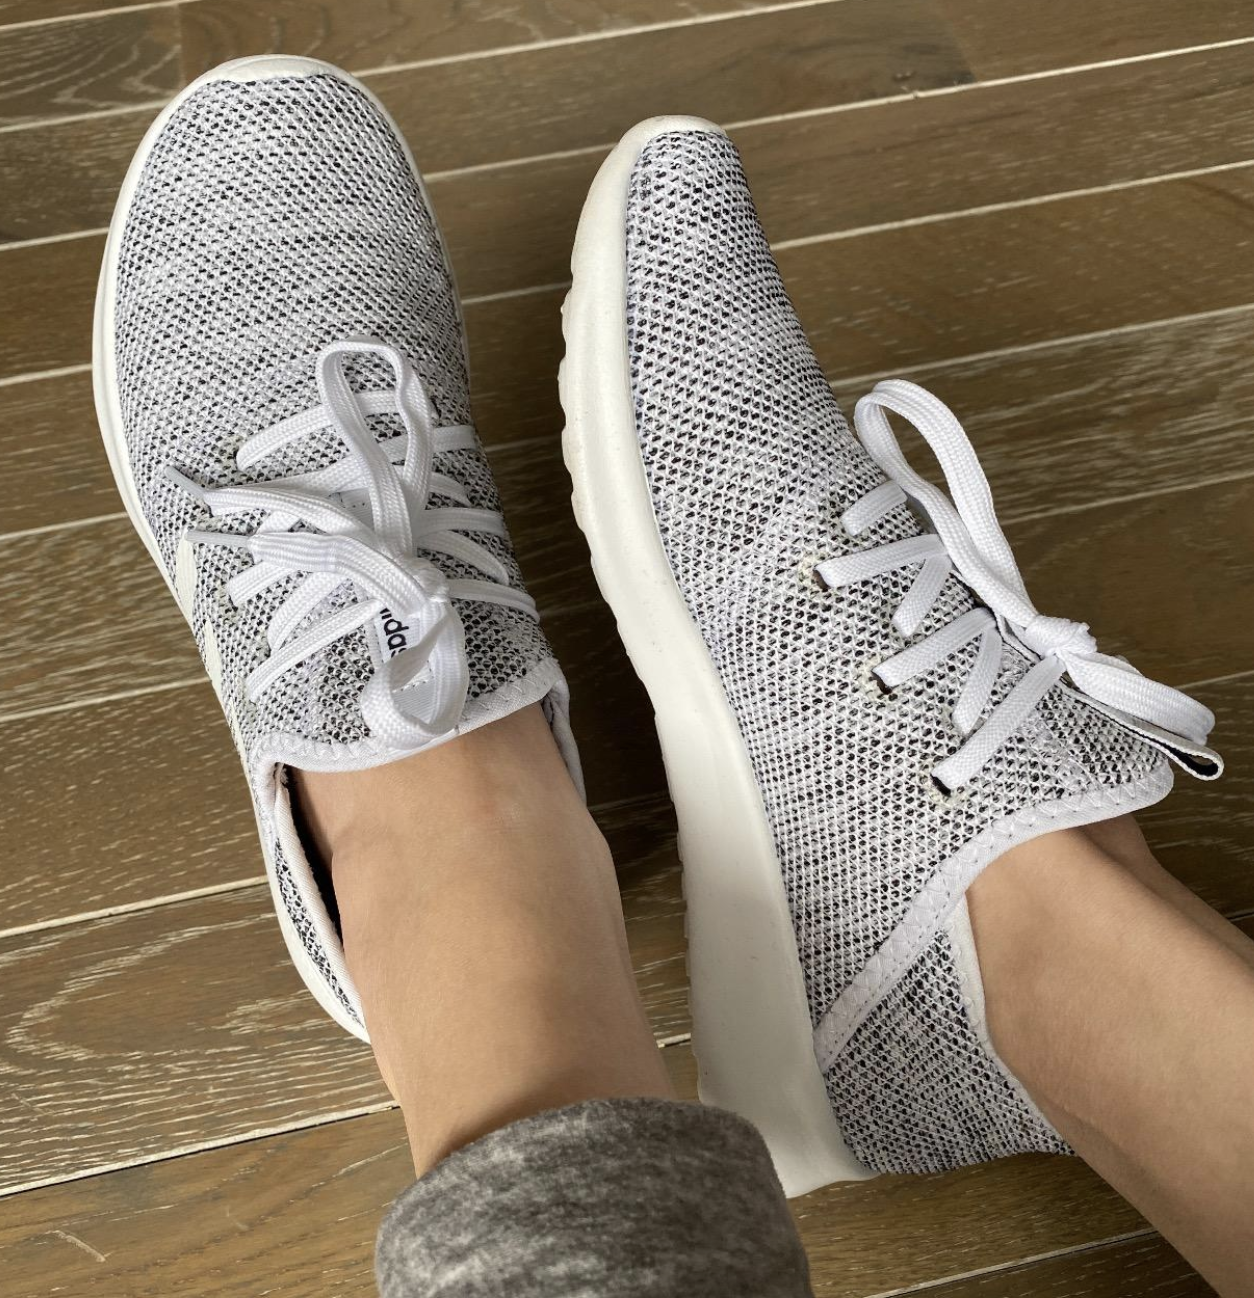 reviewer wearing white and gray lace-up sneakers